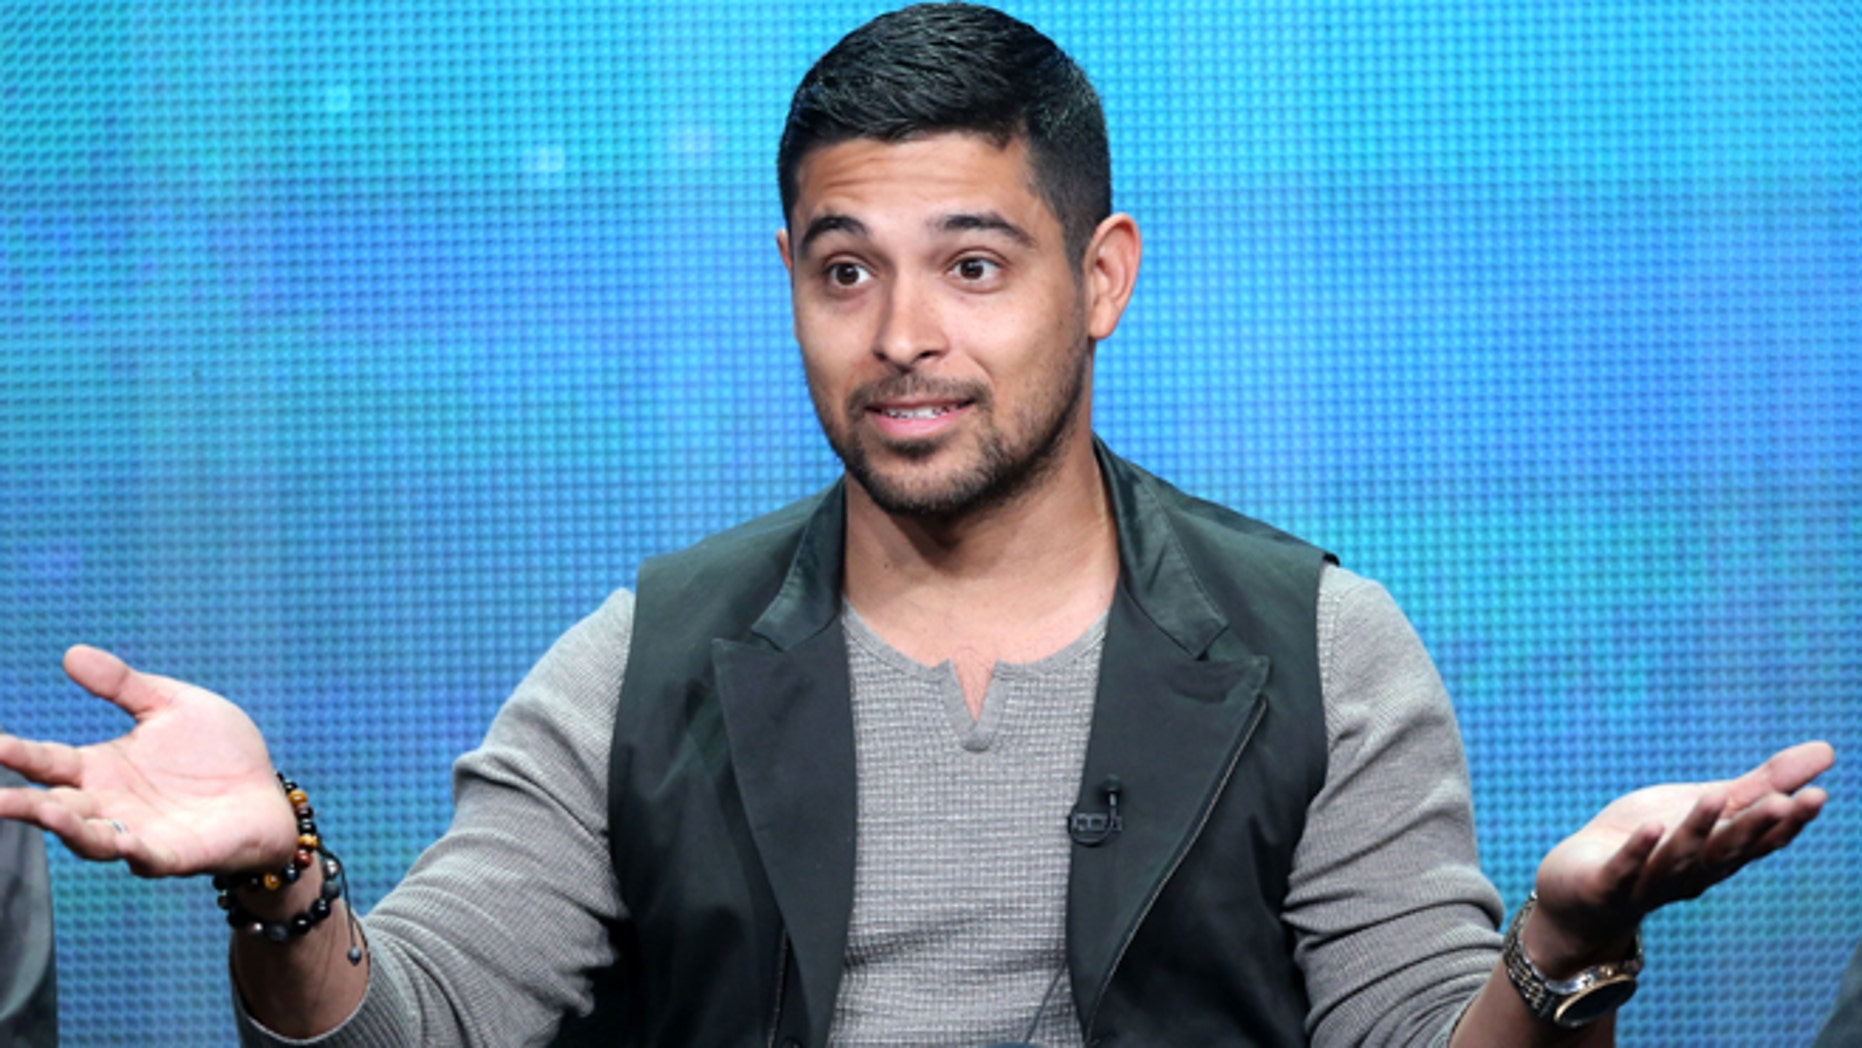 BEVERLY HILLS, CA - AUGUST 07:  Actor Wilmer Valderrama speaks onstage during 'The Graduates/Los Graduados' panel discussion at the PBS portion of the 2013 Summer Television Critics Association tour at the Beverly Hilton Hotel on August 7, 2013 in Beverly Hills, California.  (Photo by Frederick M. Brown/Getty Images)